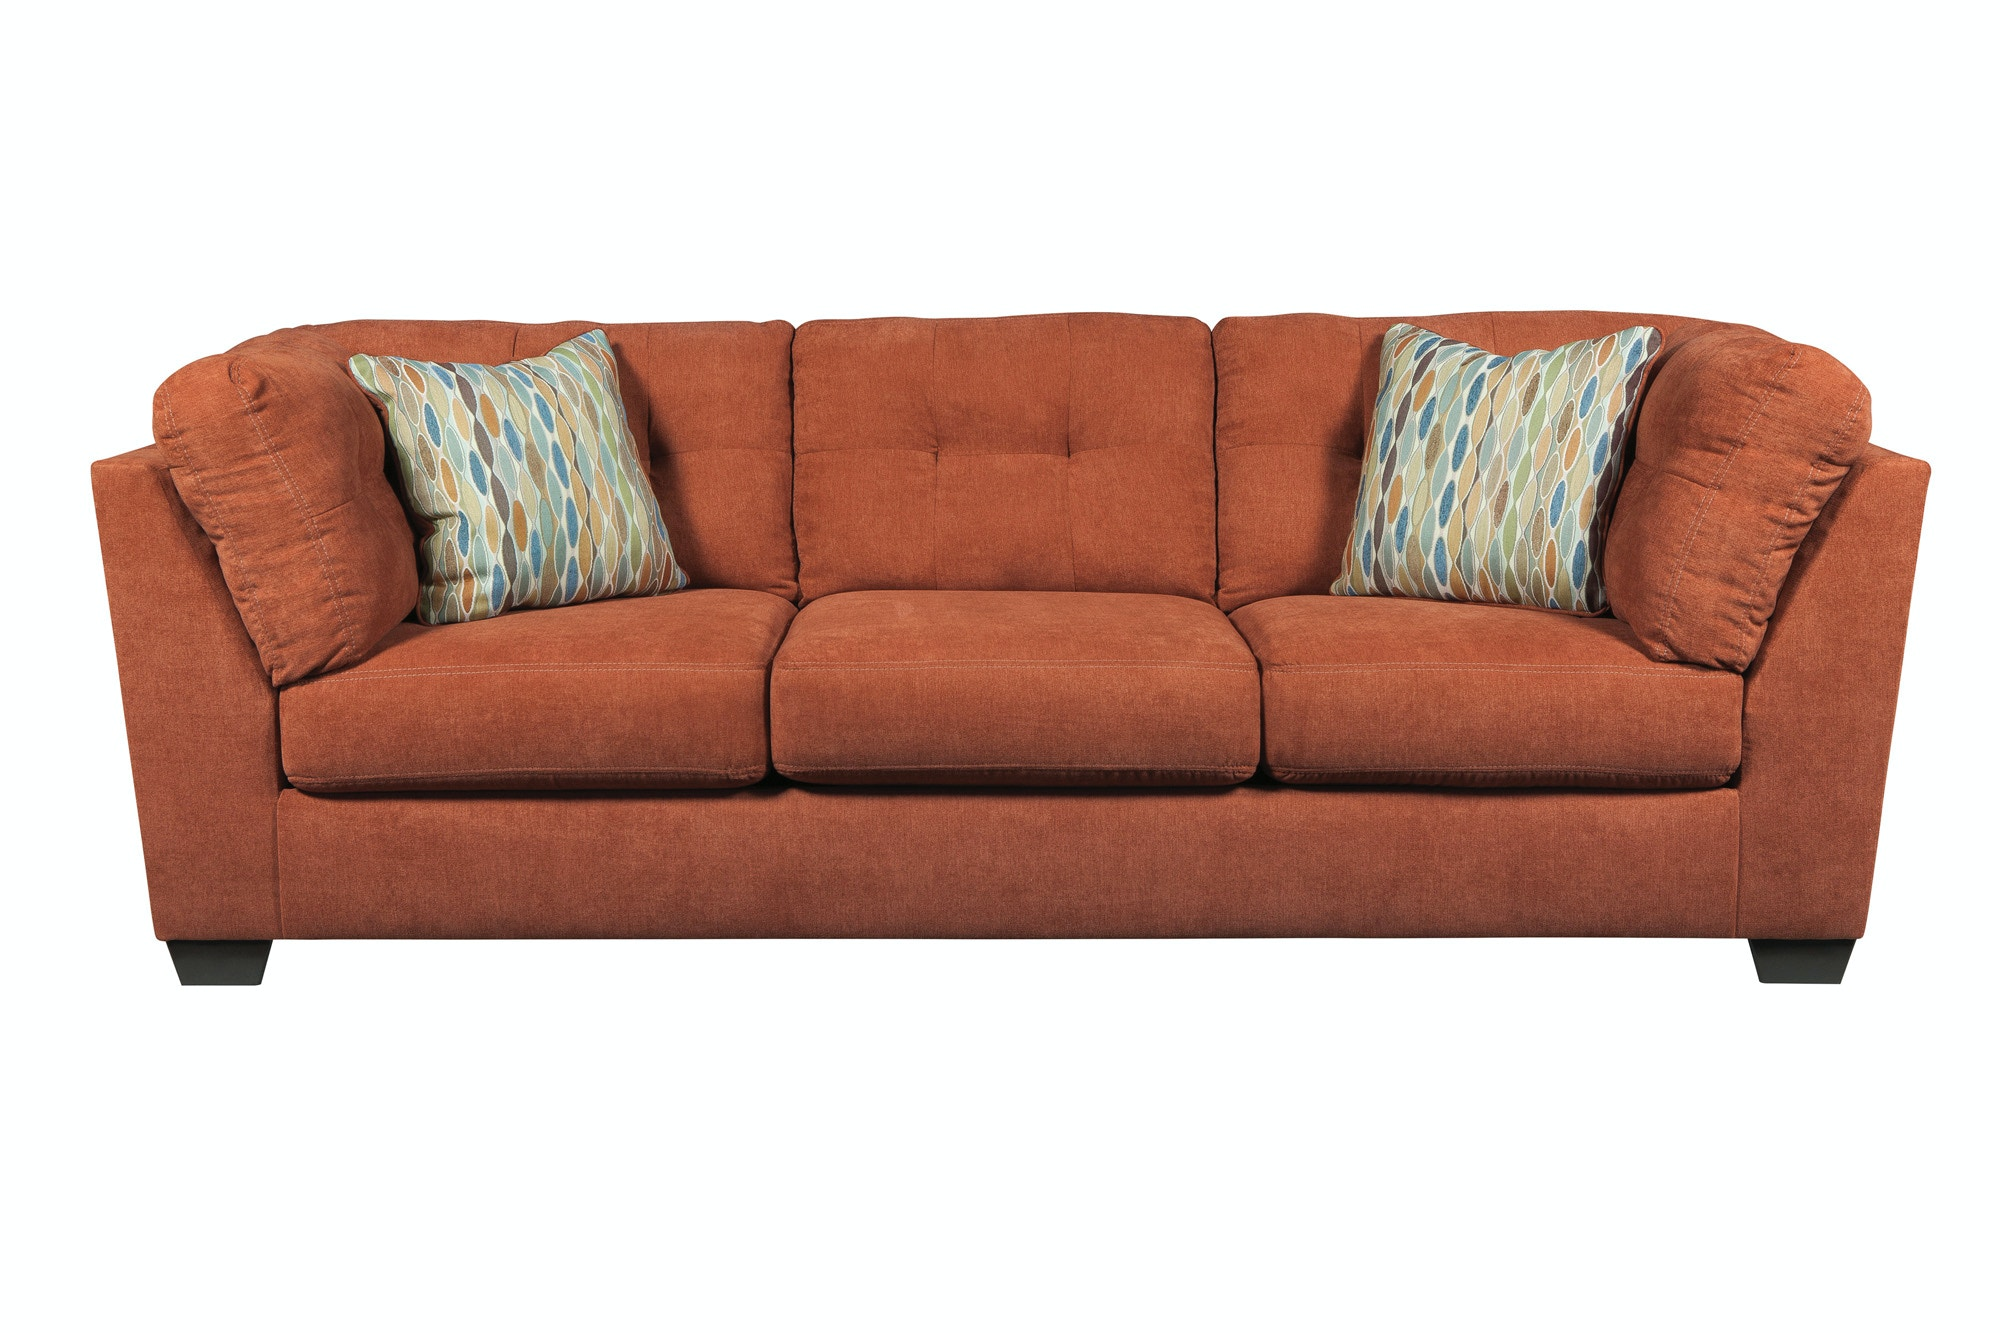 Signature Design by Ashley Living Room Delta City Left Chaise Sectional with Ottoman - Steel ...